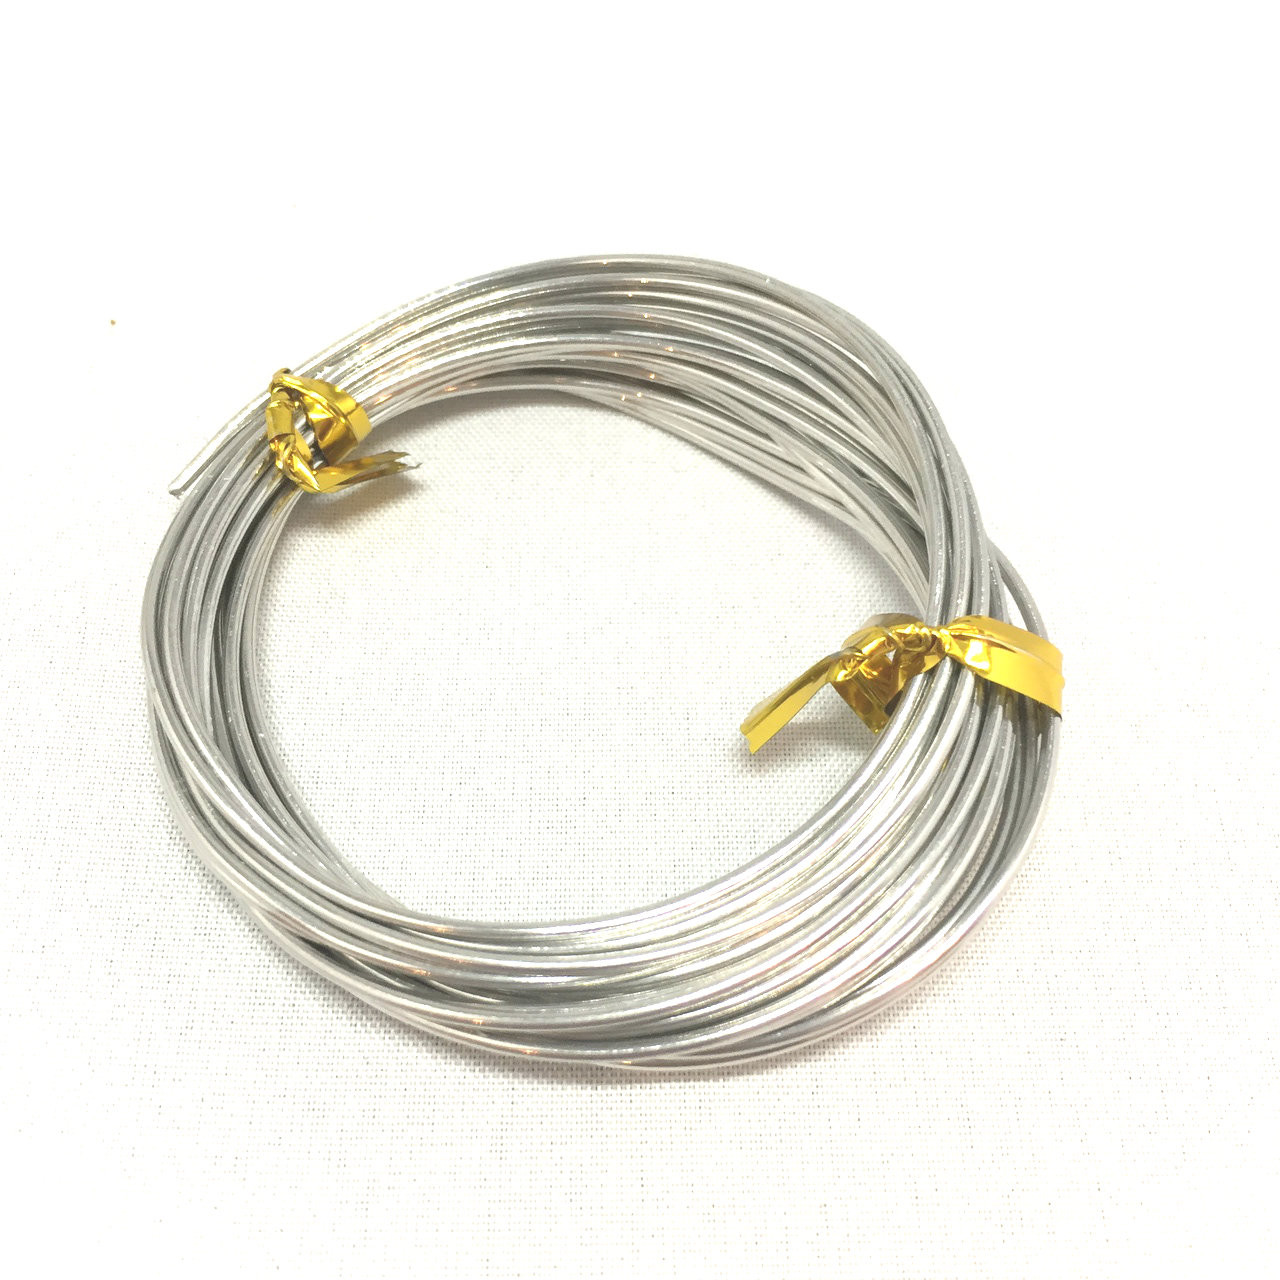 Aluminium Wire 1mm x 3 meters